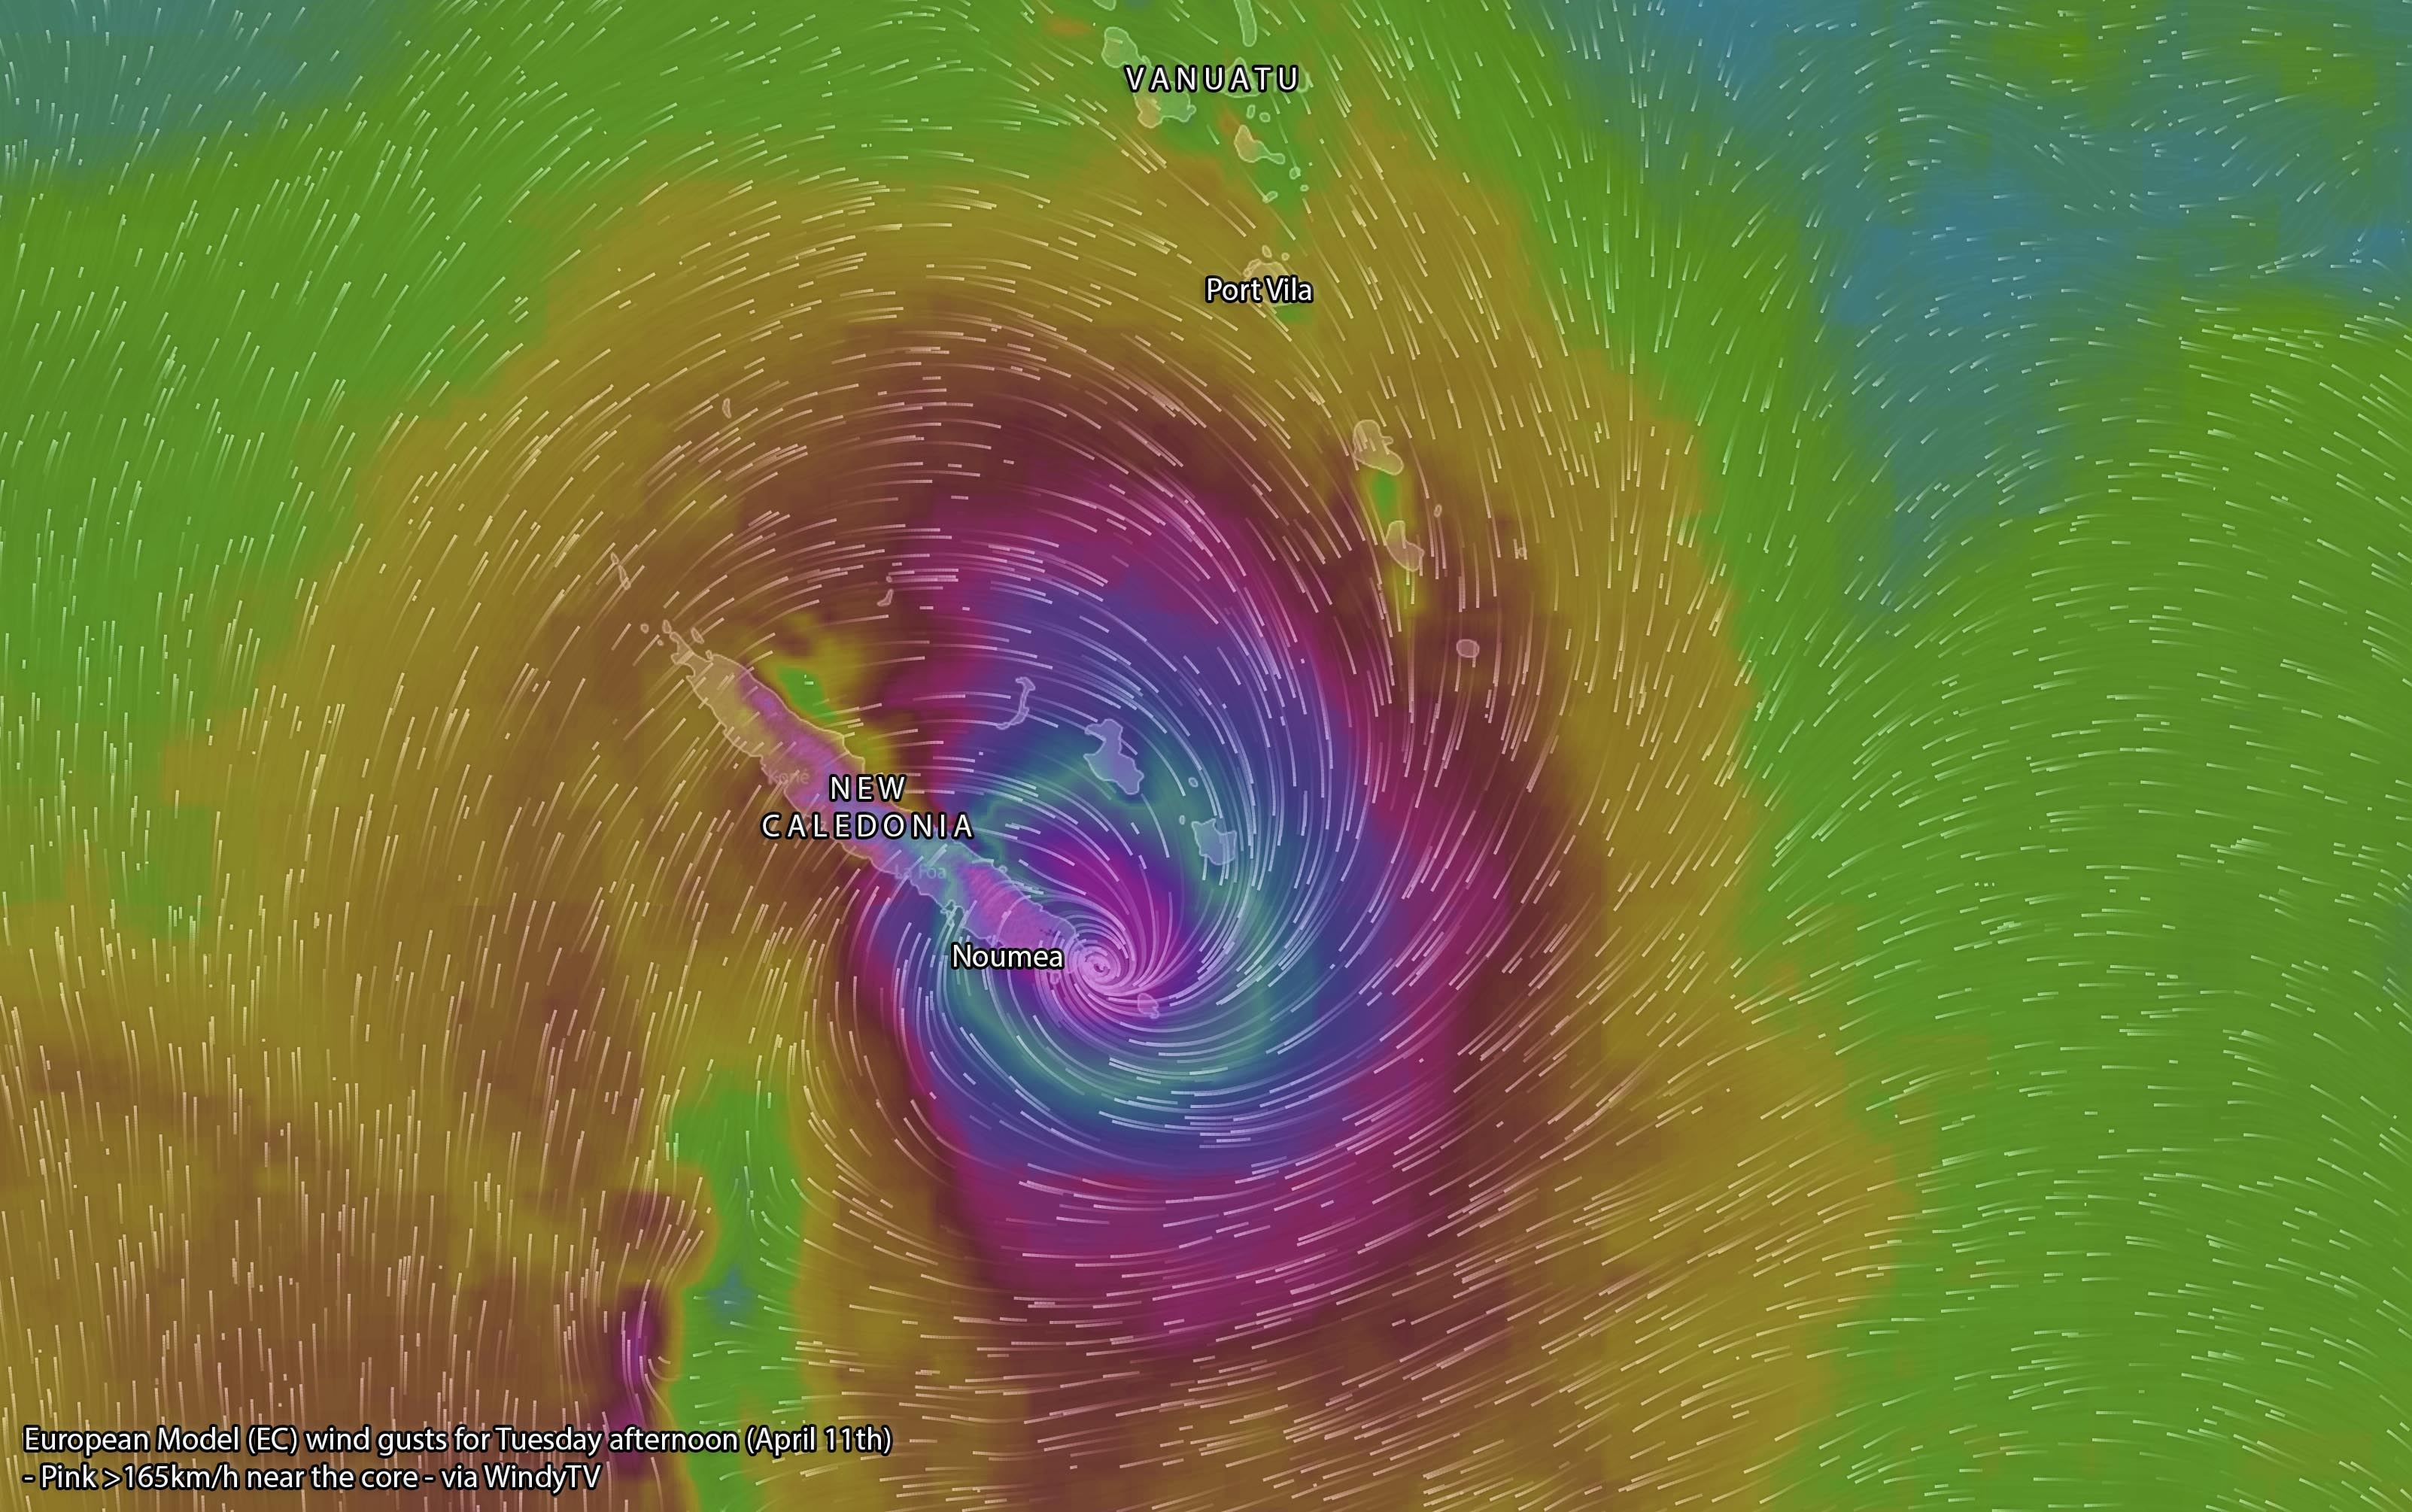 Forecast wind gusts via EC Model (WindyTV) - pink near the eye indicates winds to over 165km/h (Category 3)